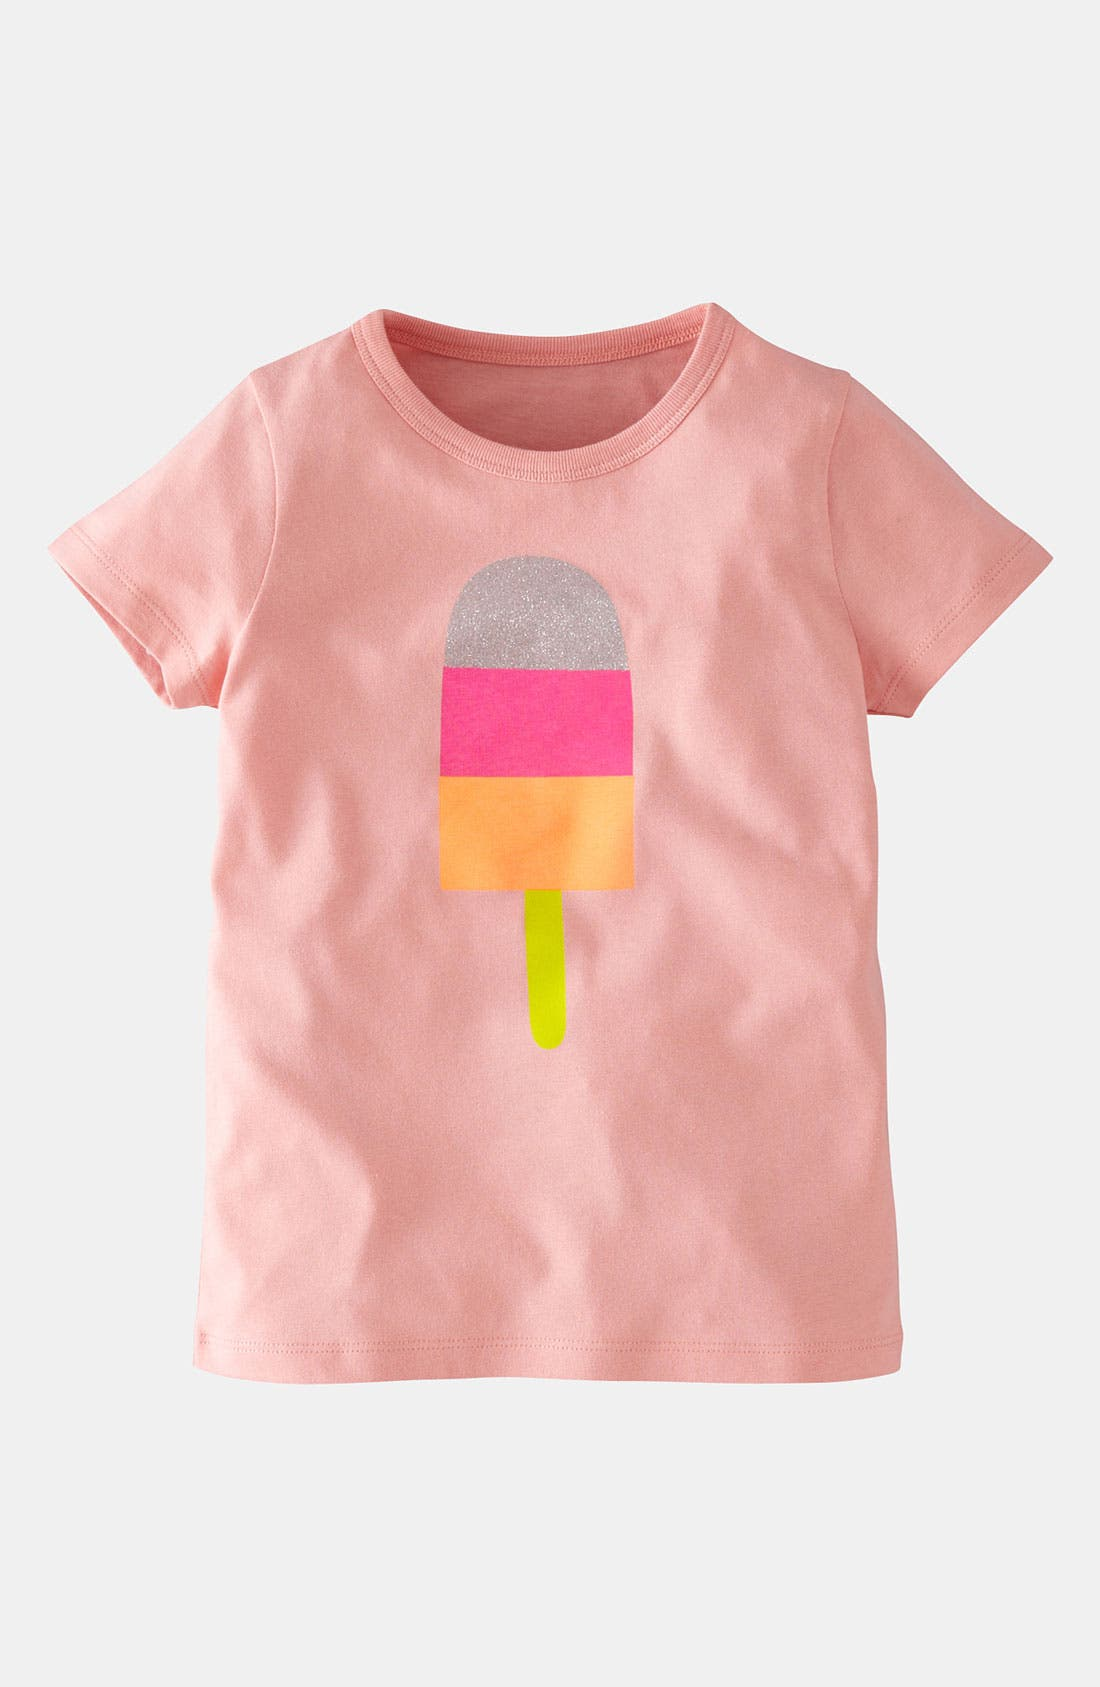 Main Image - Mini Boden 'Glittery' Graphic Tee (Little Girls & Big Girls)